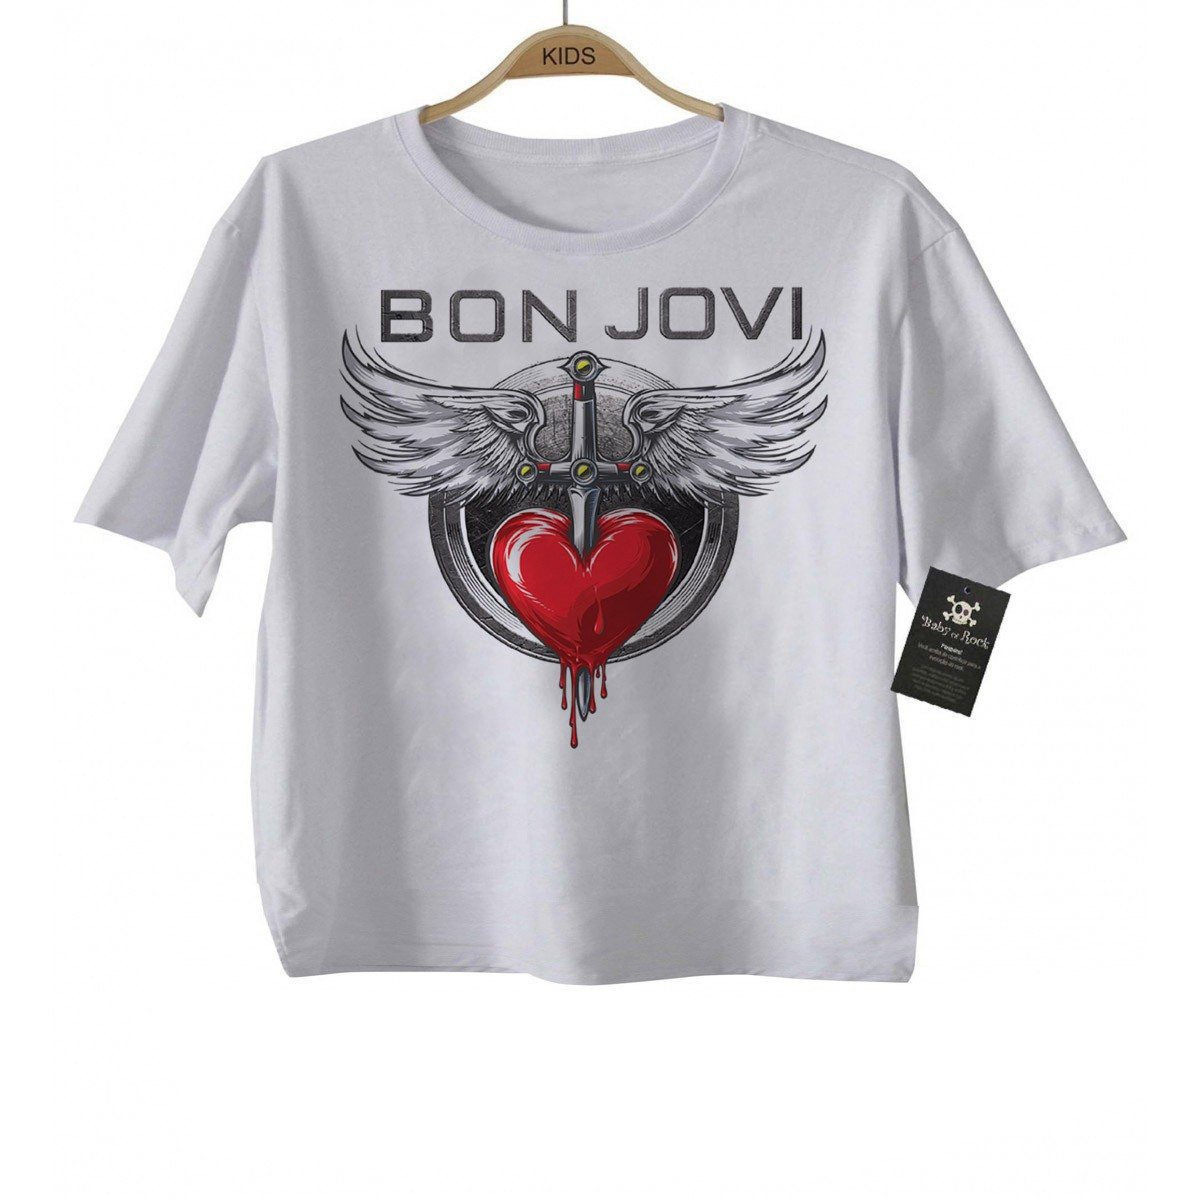 Camiseta de Rock Infantil -  Bon Jovi - White  - Baby Monster S/A